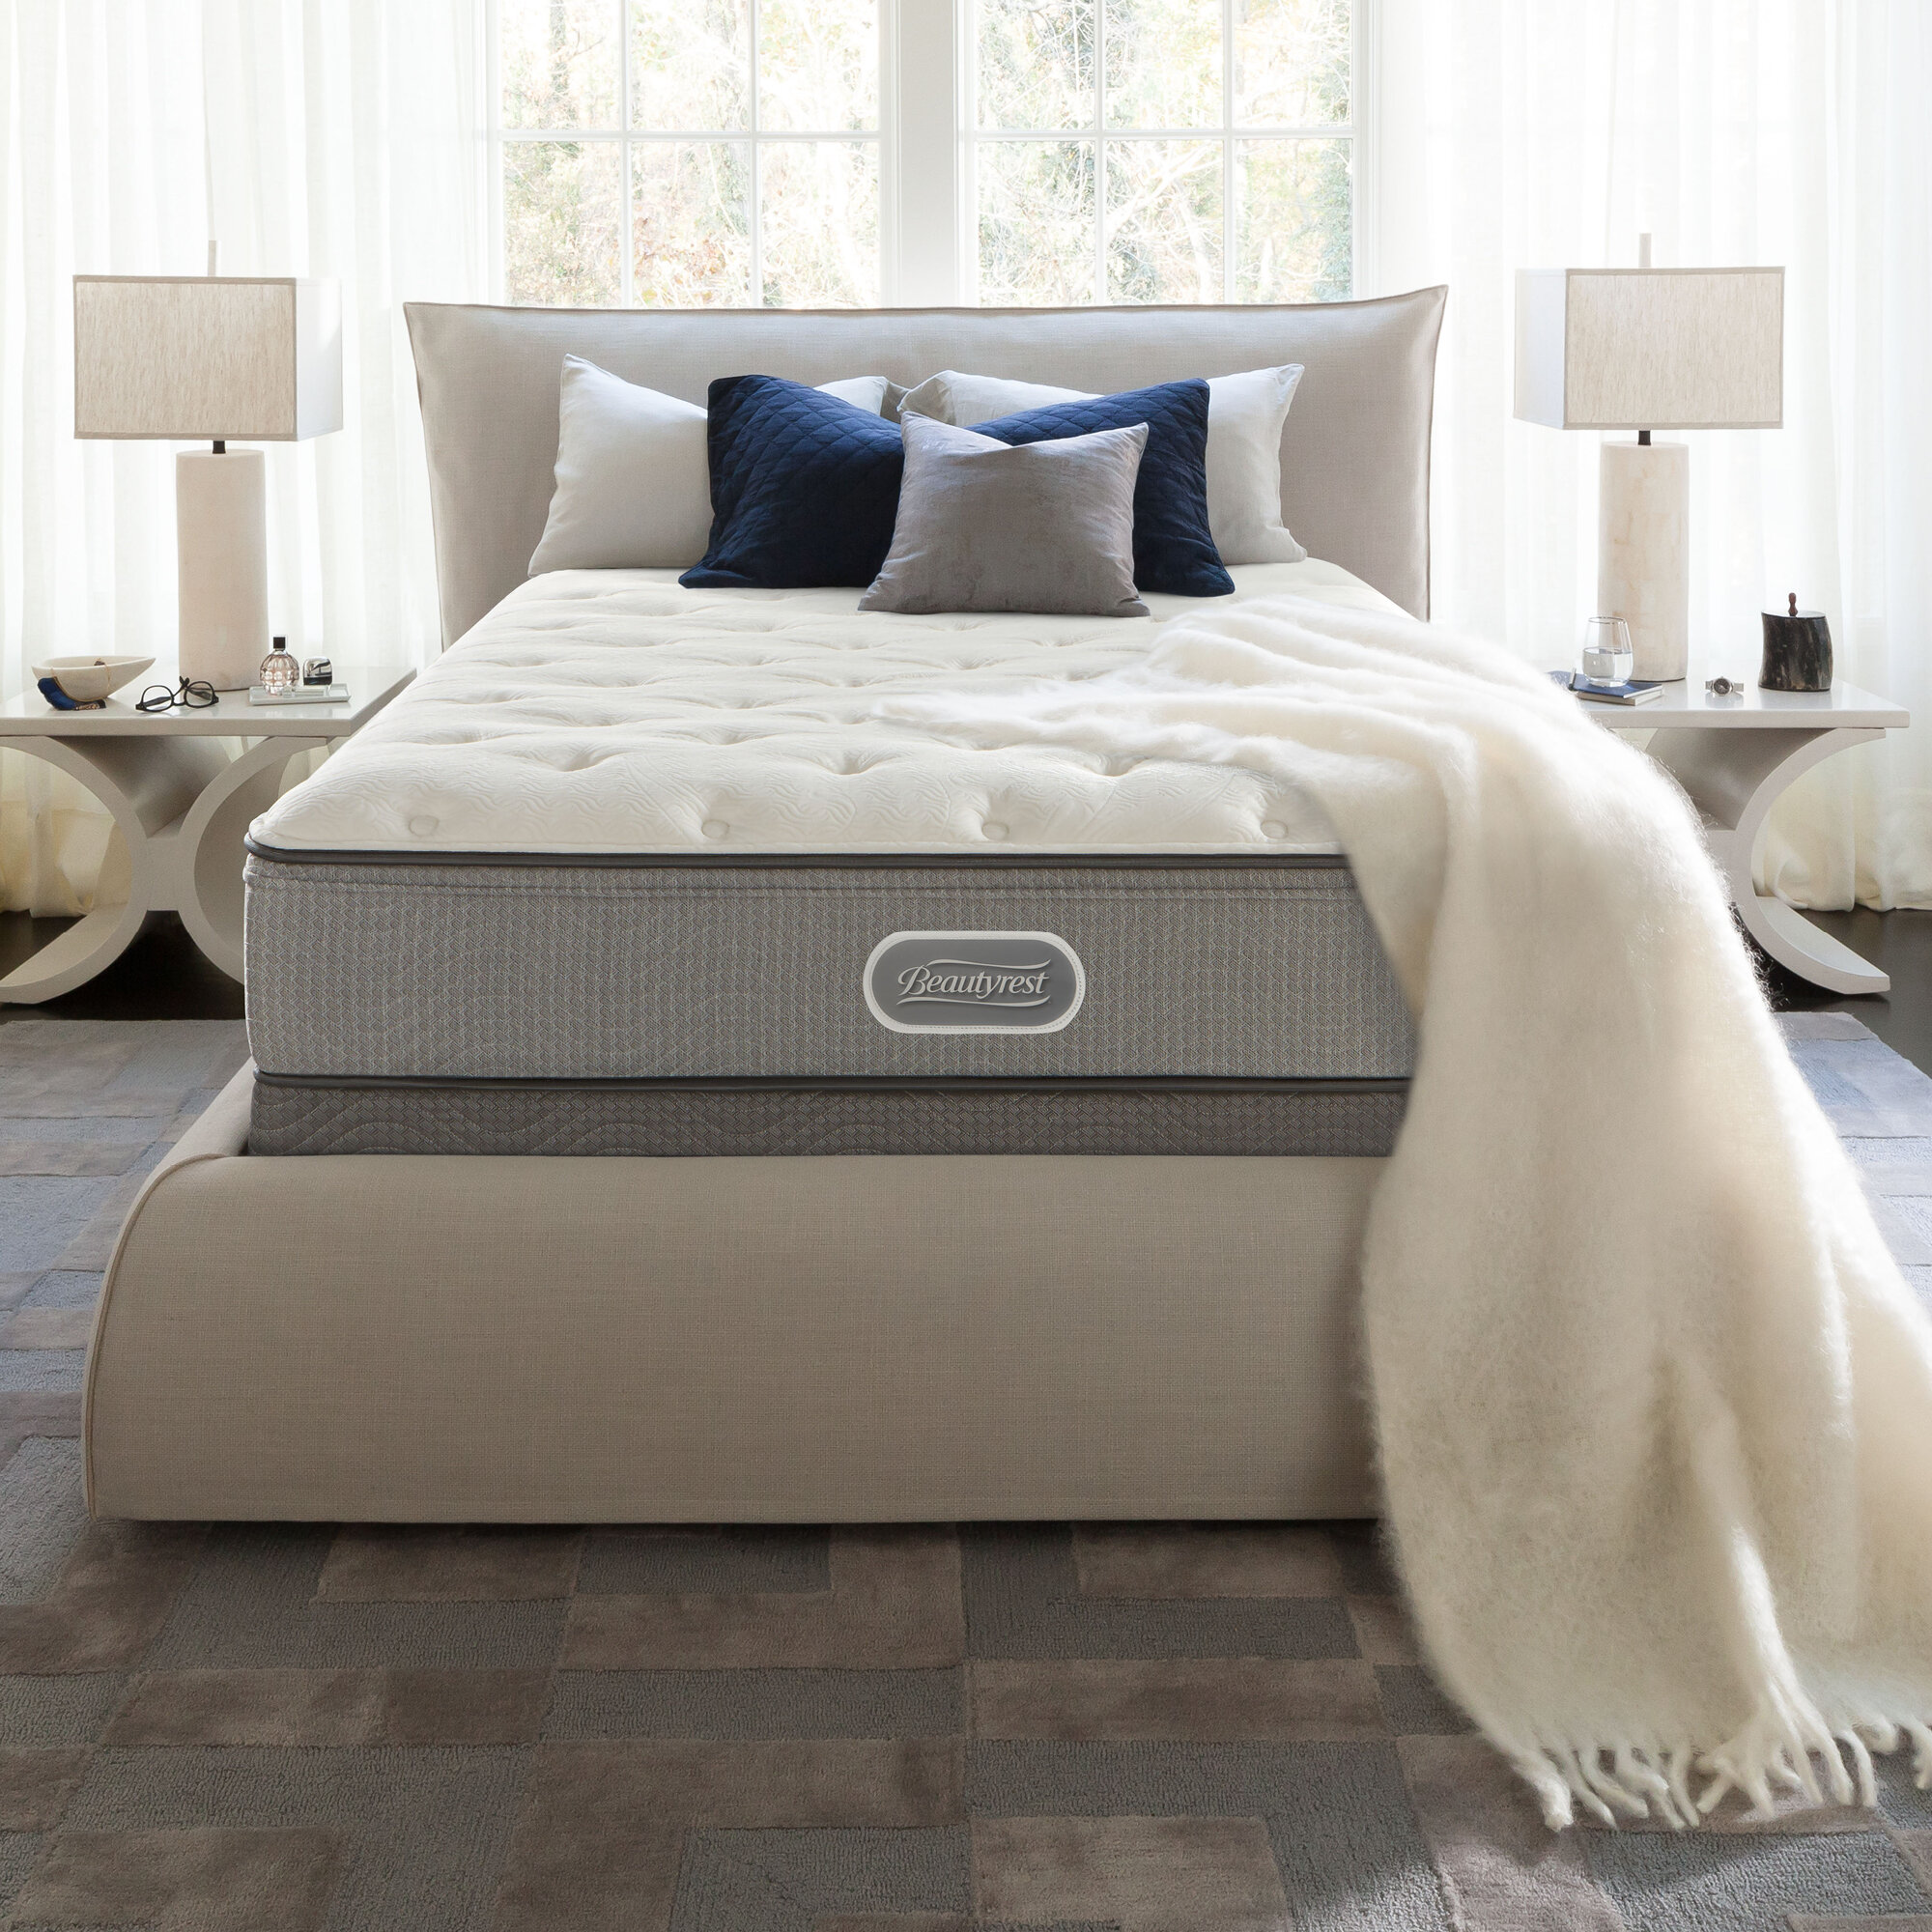 mattress home and queen foam full top topper serta pillow memory